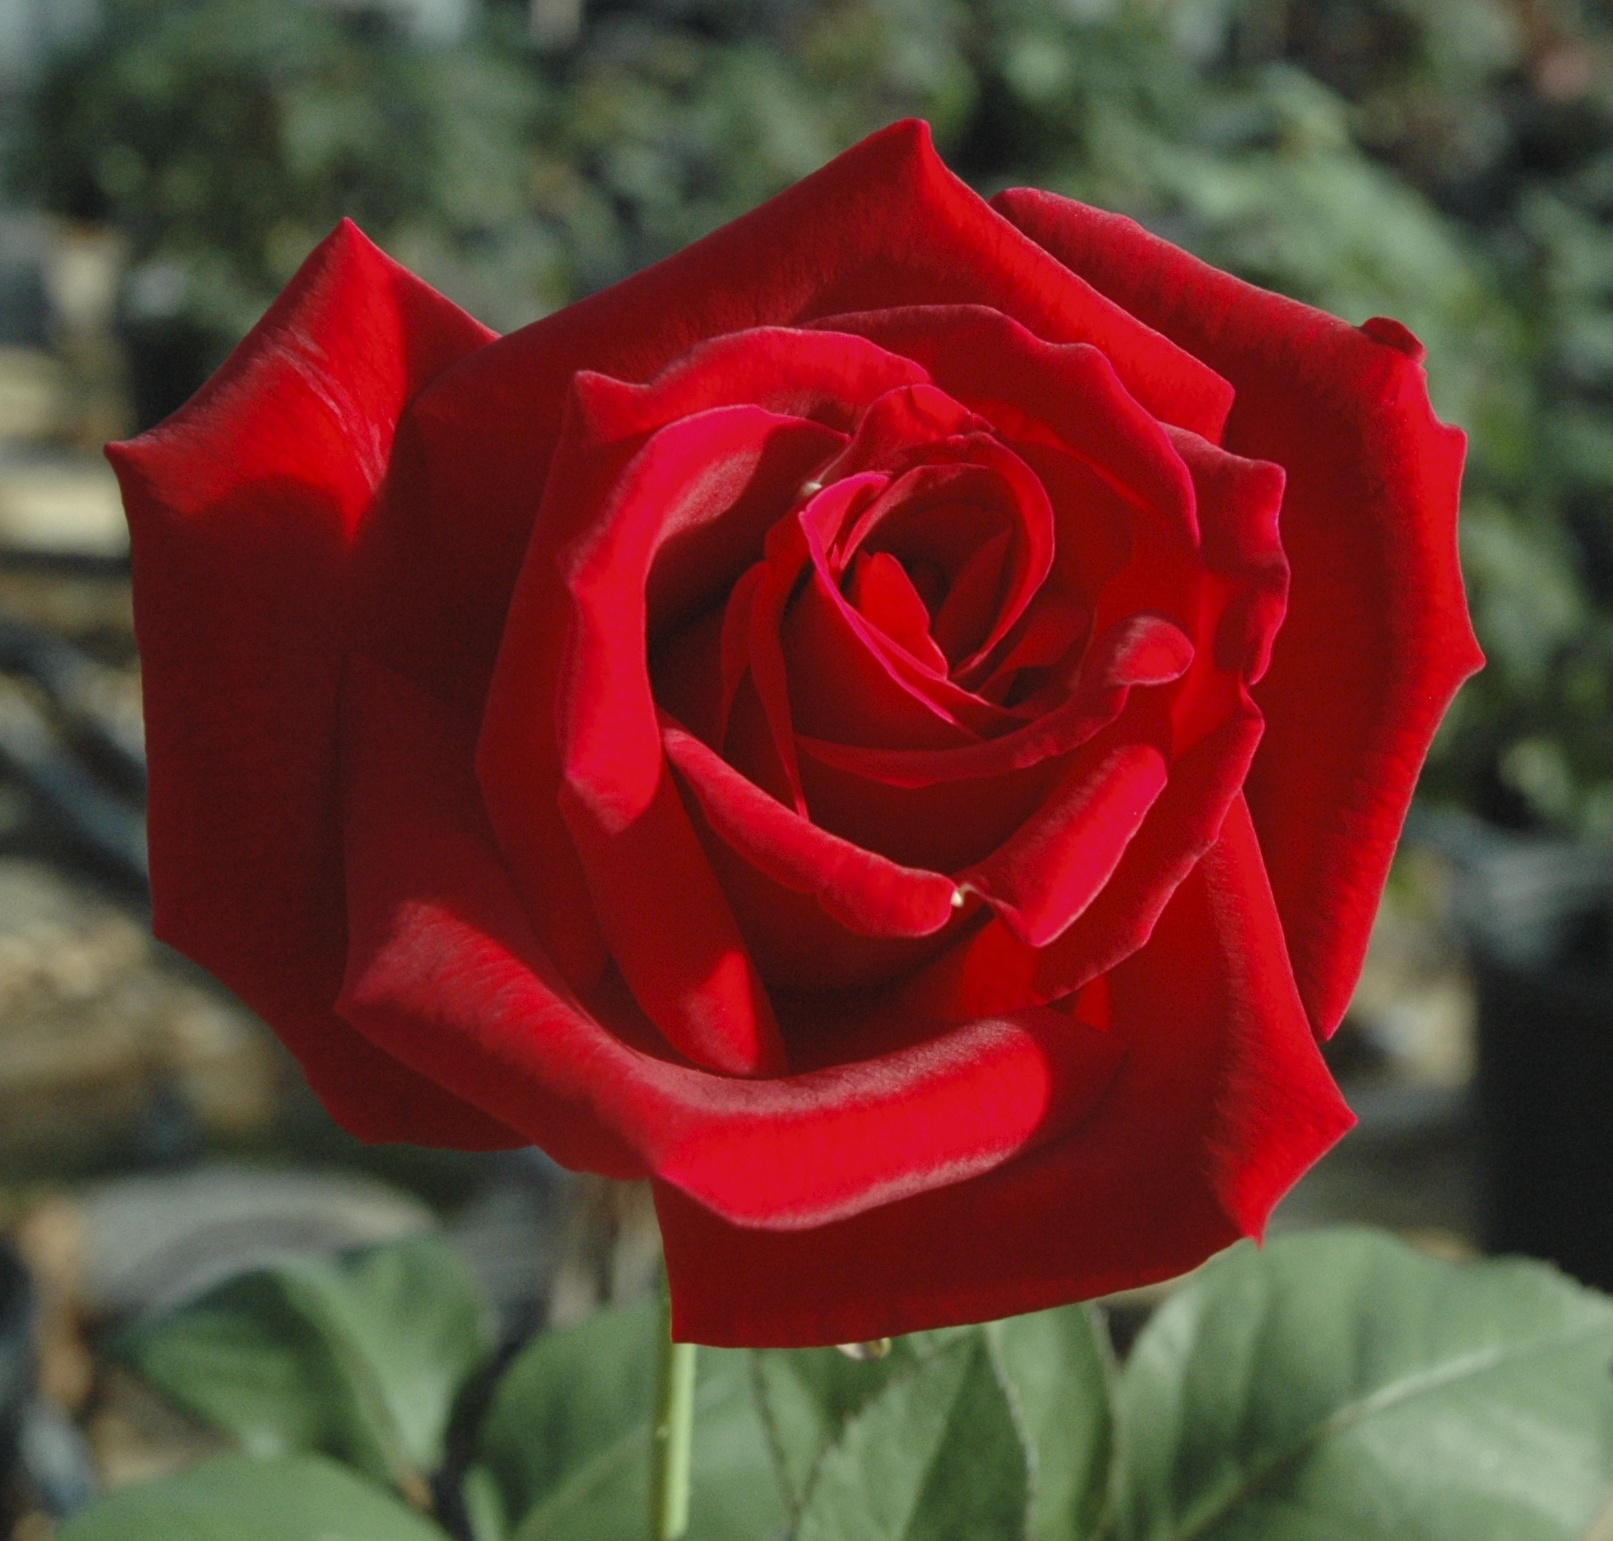 Relieving Red Hybrid Tea Lincoln Red Florida Roses Chrysler Imperial Rose Images Chrysler Imperial Rose Size houzz-03 Chrysler Imperial Rose